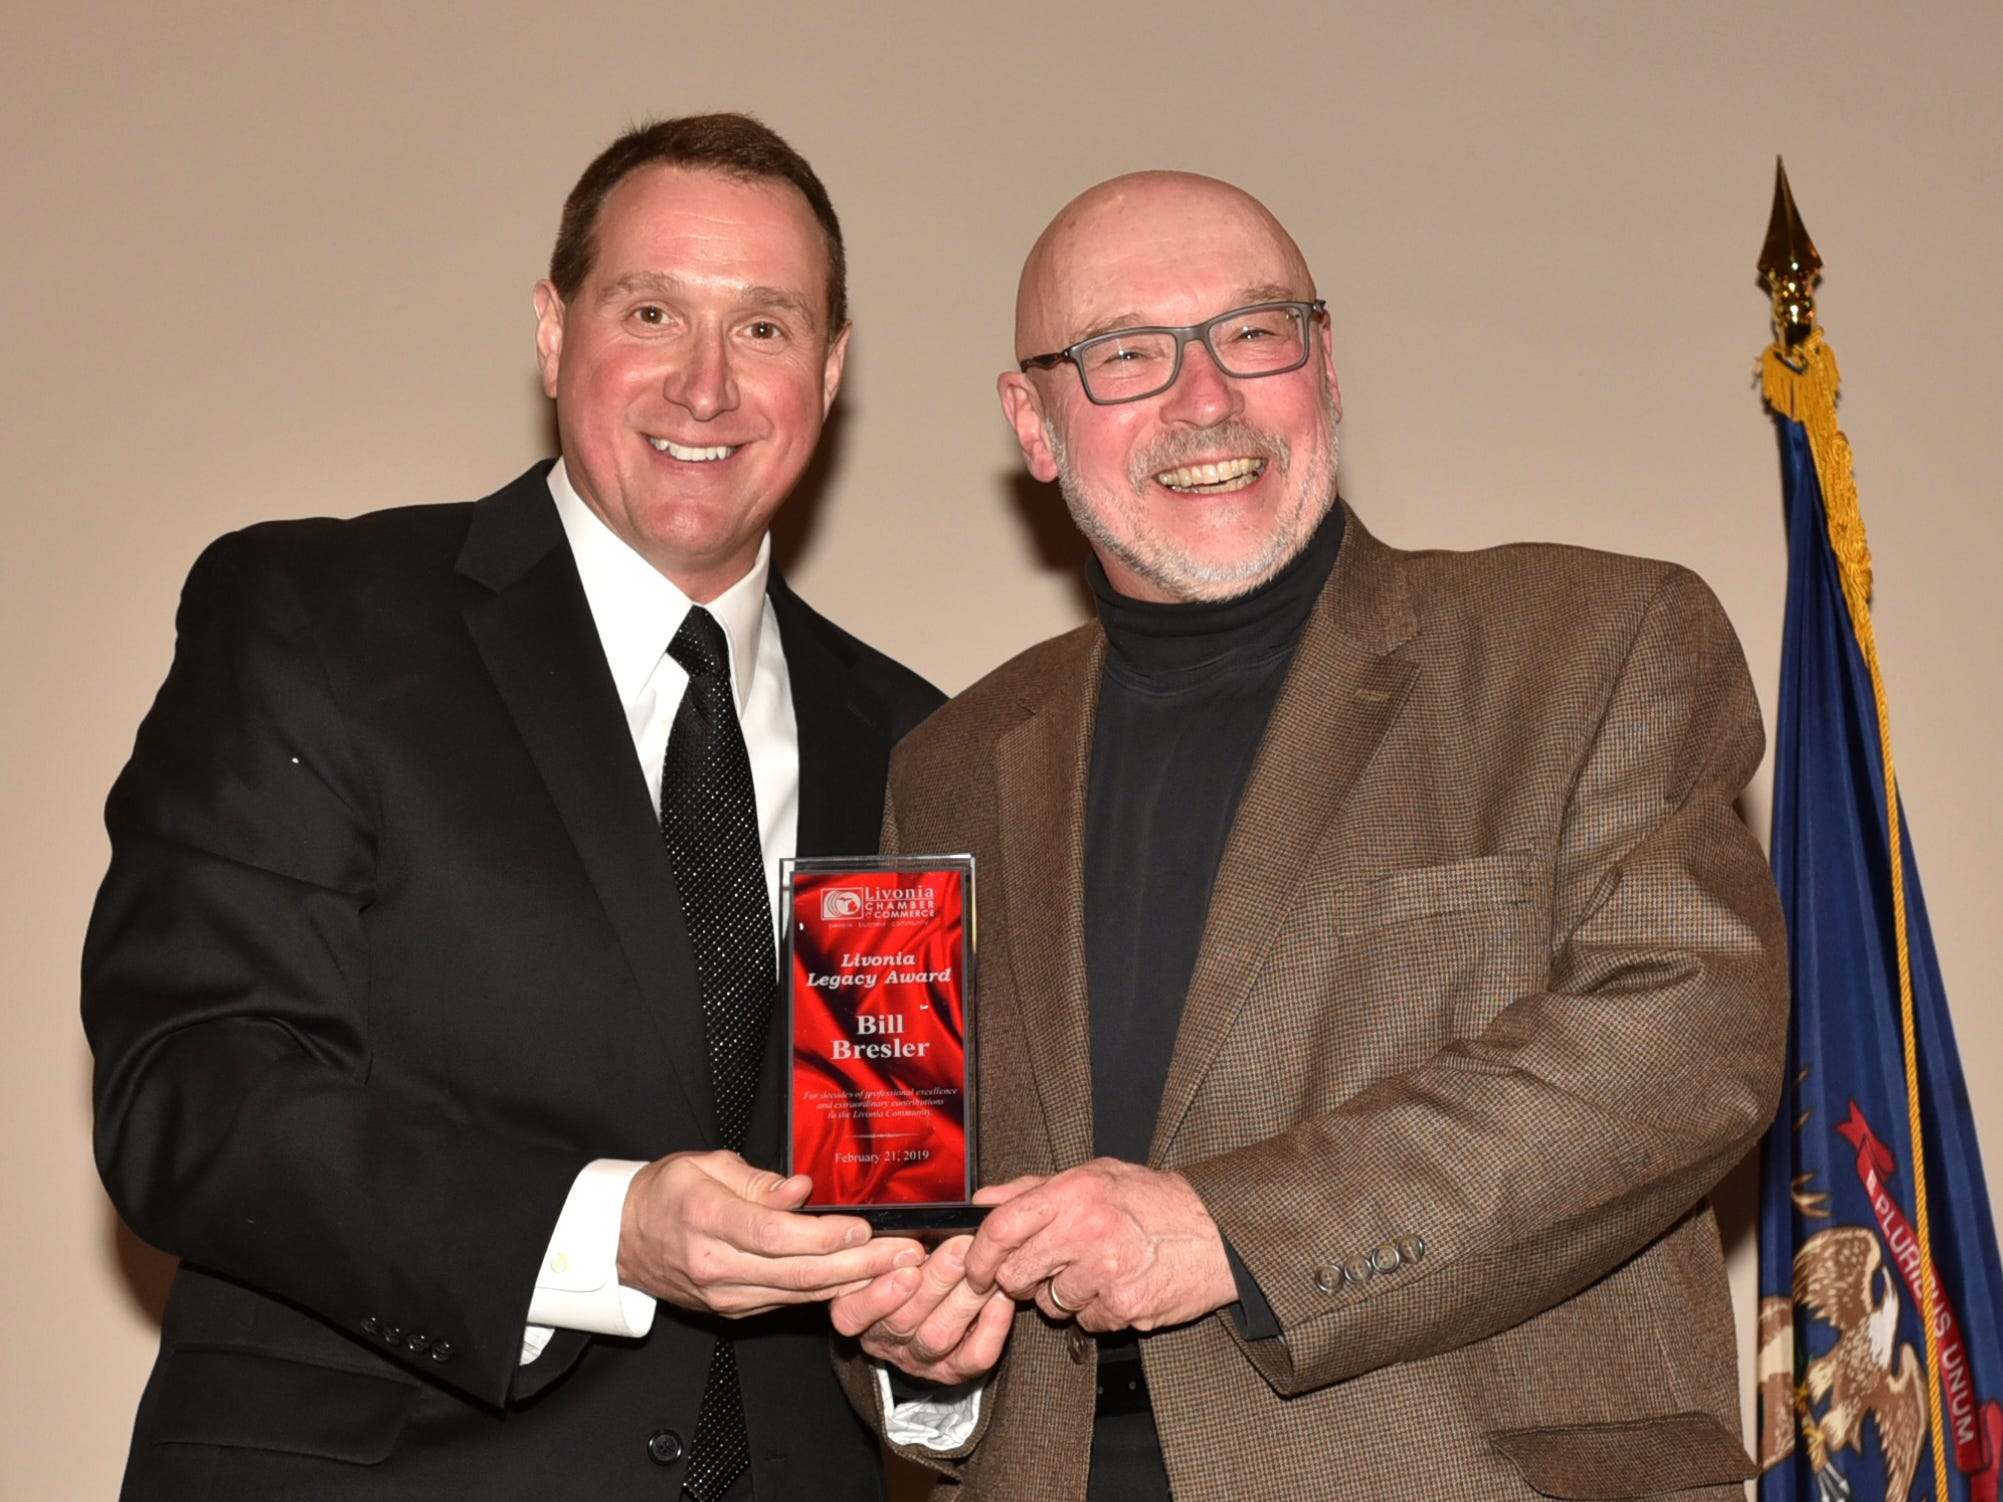 Dan West, left, congratulates recently-retired Observer and Eccentric photographer Bill Bresler with the Livonia Legacy Award on Feb. 21. Bresler covered the city of Livonia, and other local communities, for 40 years before retiring earlier this month.